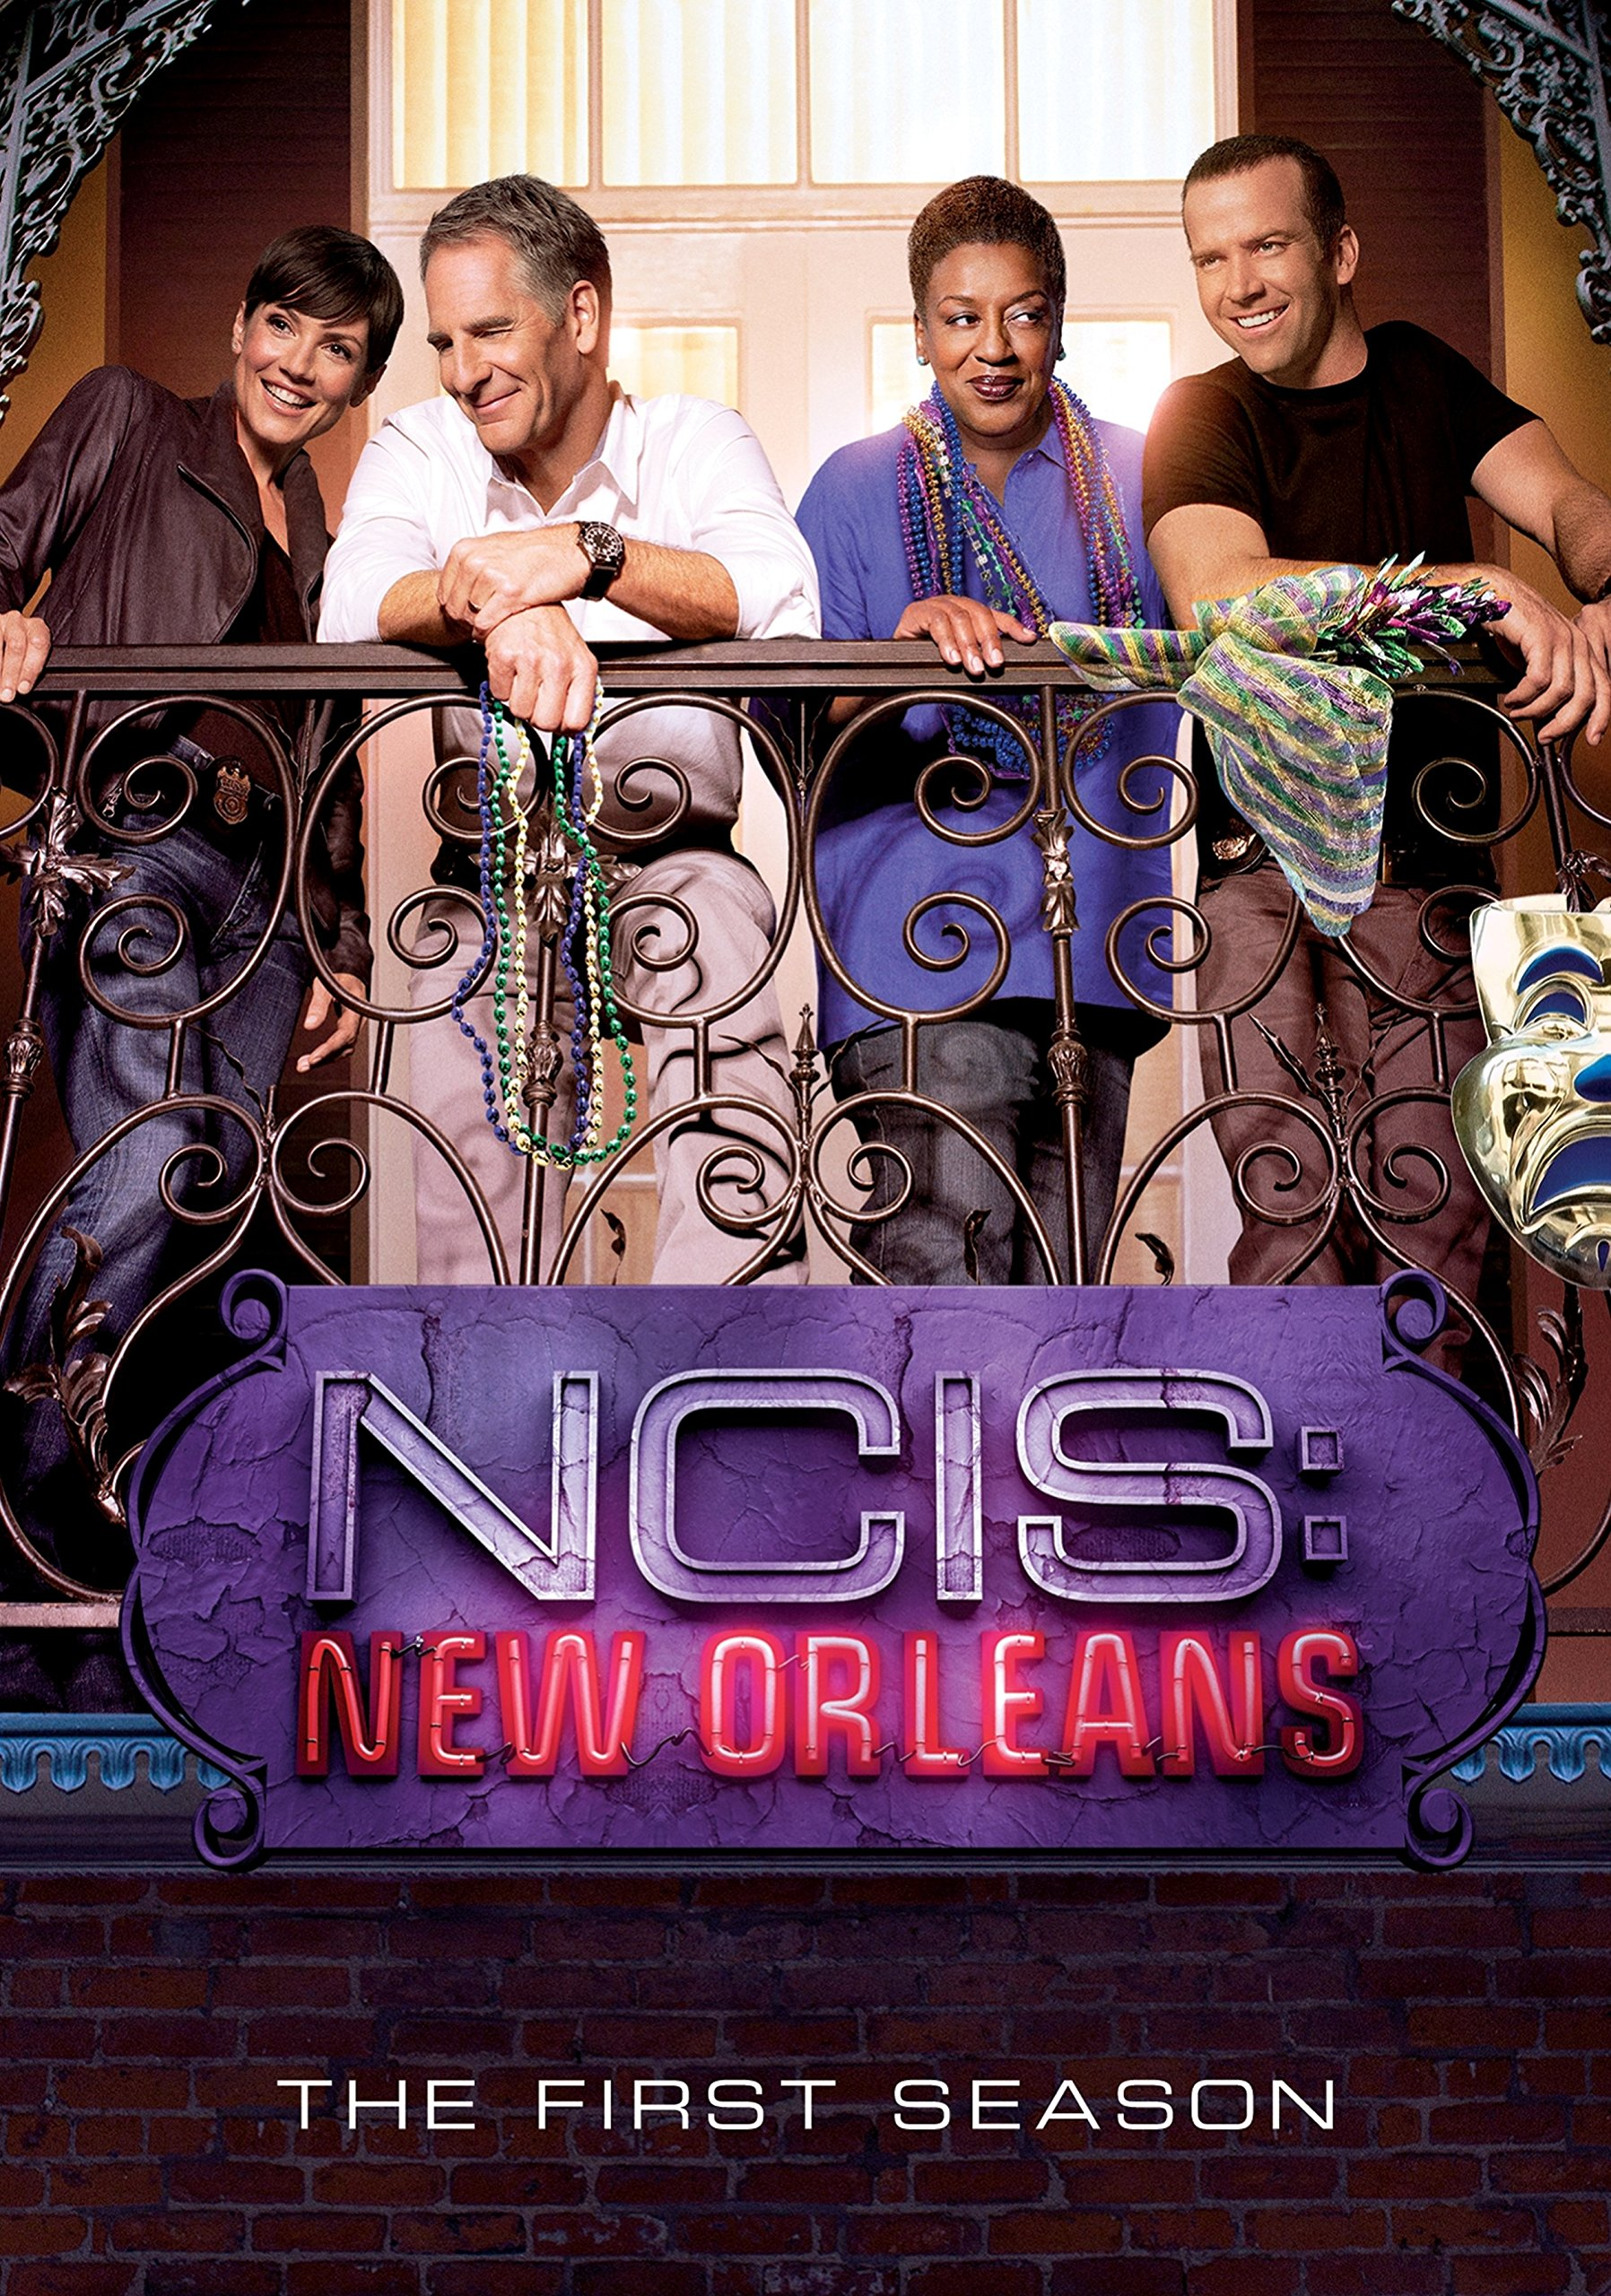 DVD : NCIS New Orleans: The First Season (Boxed Set, Widescreen, AC-3, , Sensormatic)